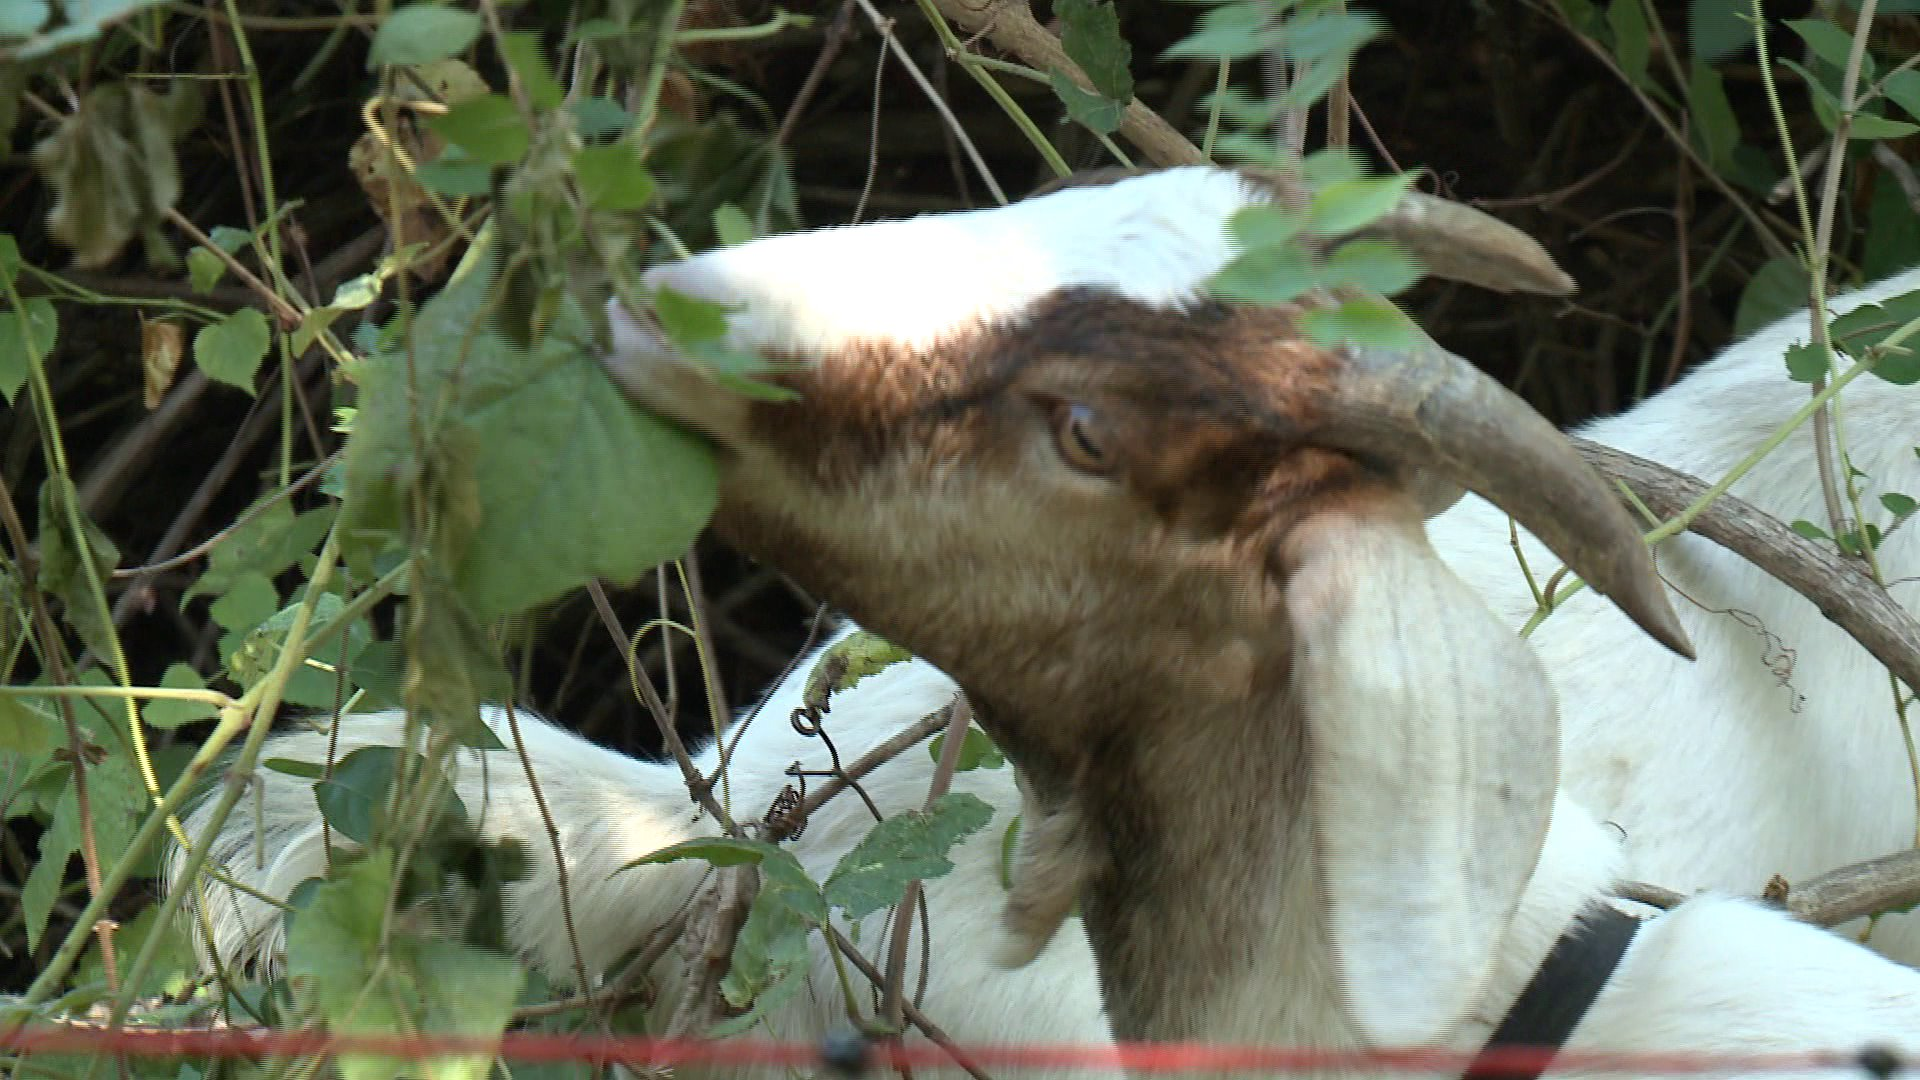 greedy-goats-munching